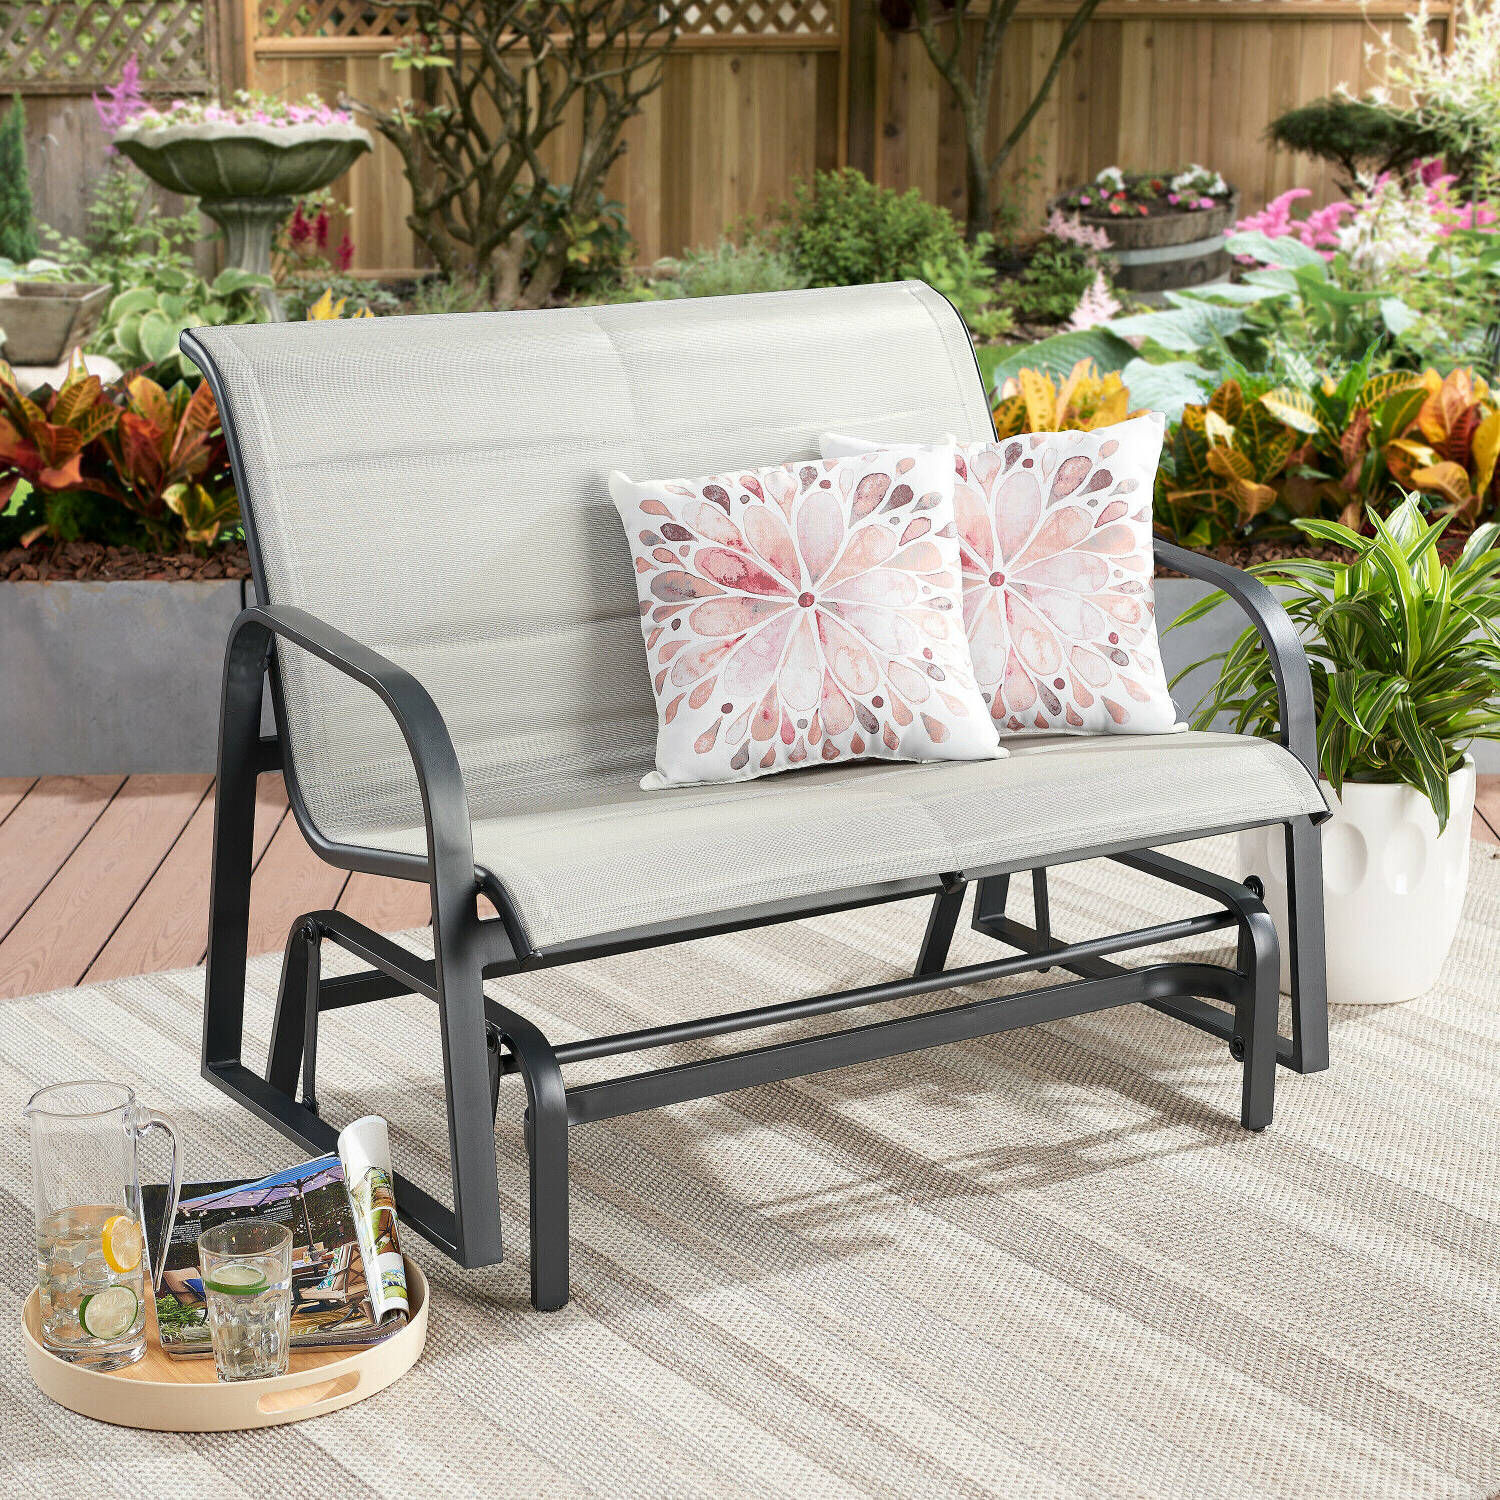 Loveseat Glider Benches With Cushions In Favorite Montrose Padded Sling Glider Bench Outdoor Garden Patio Porch Furniture Chair (View 29 of 30)